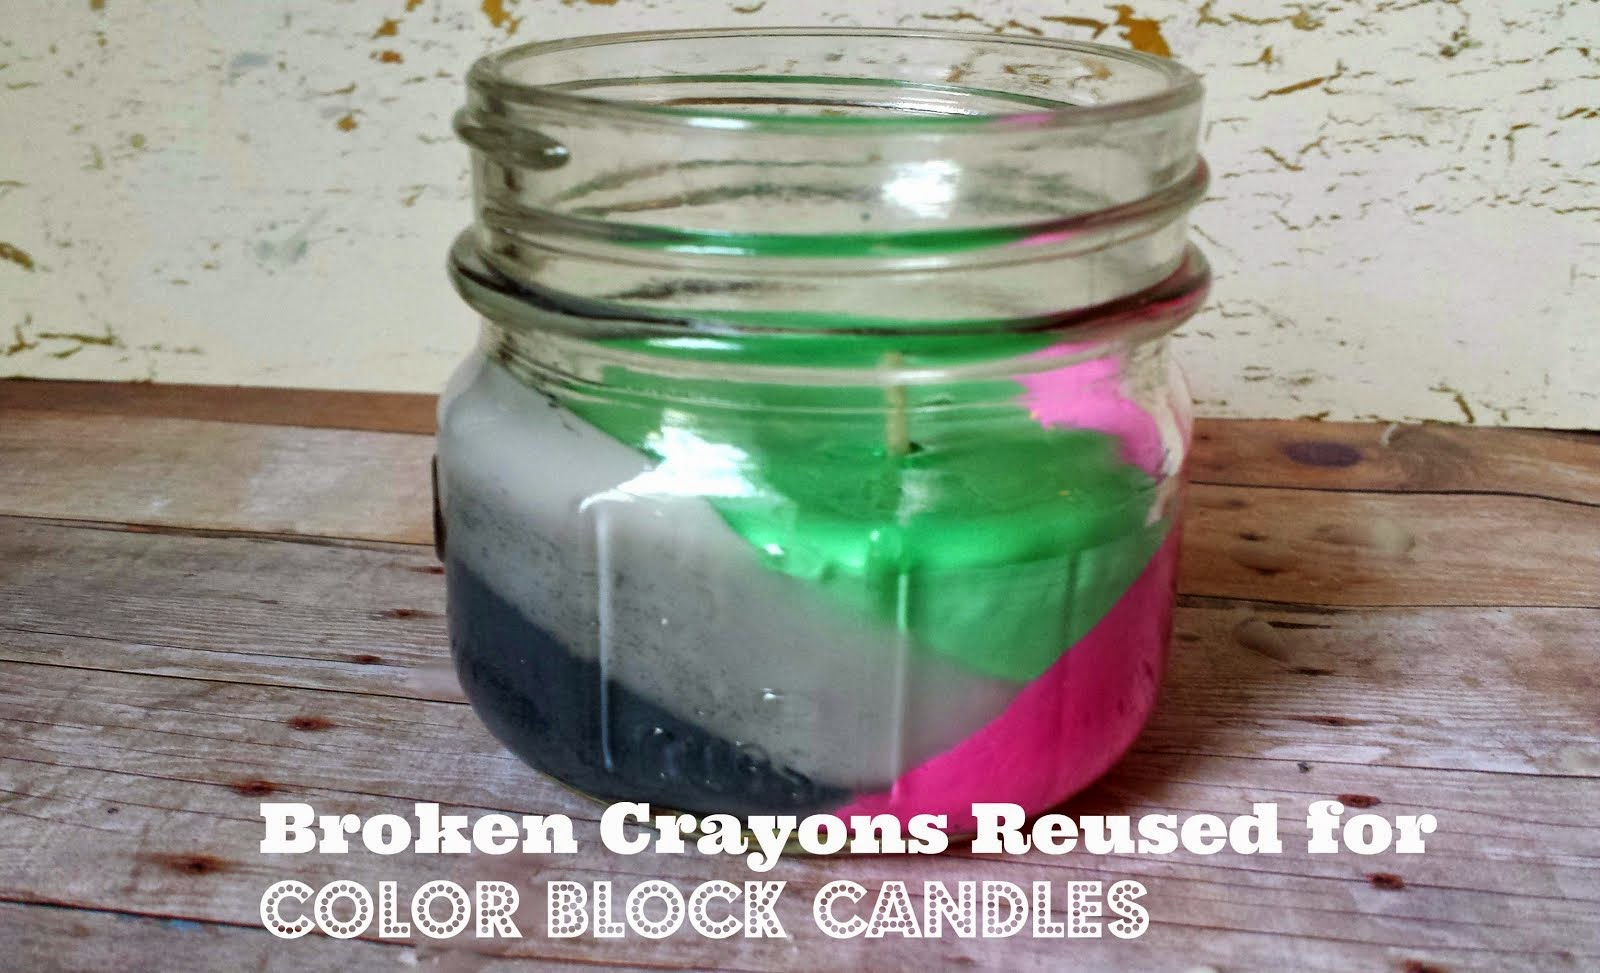 Reused Broken Crayons to Make Candles